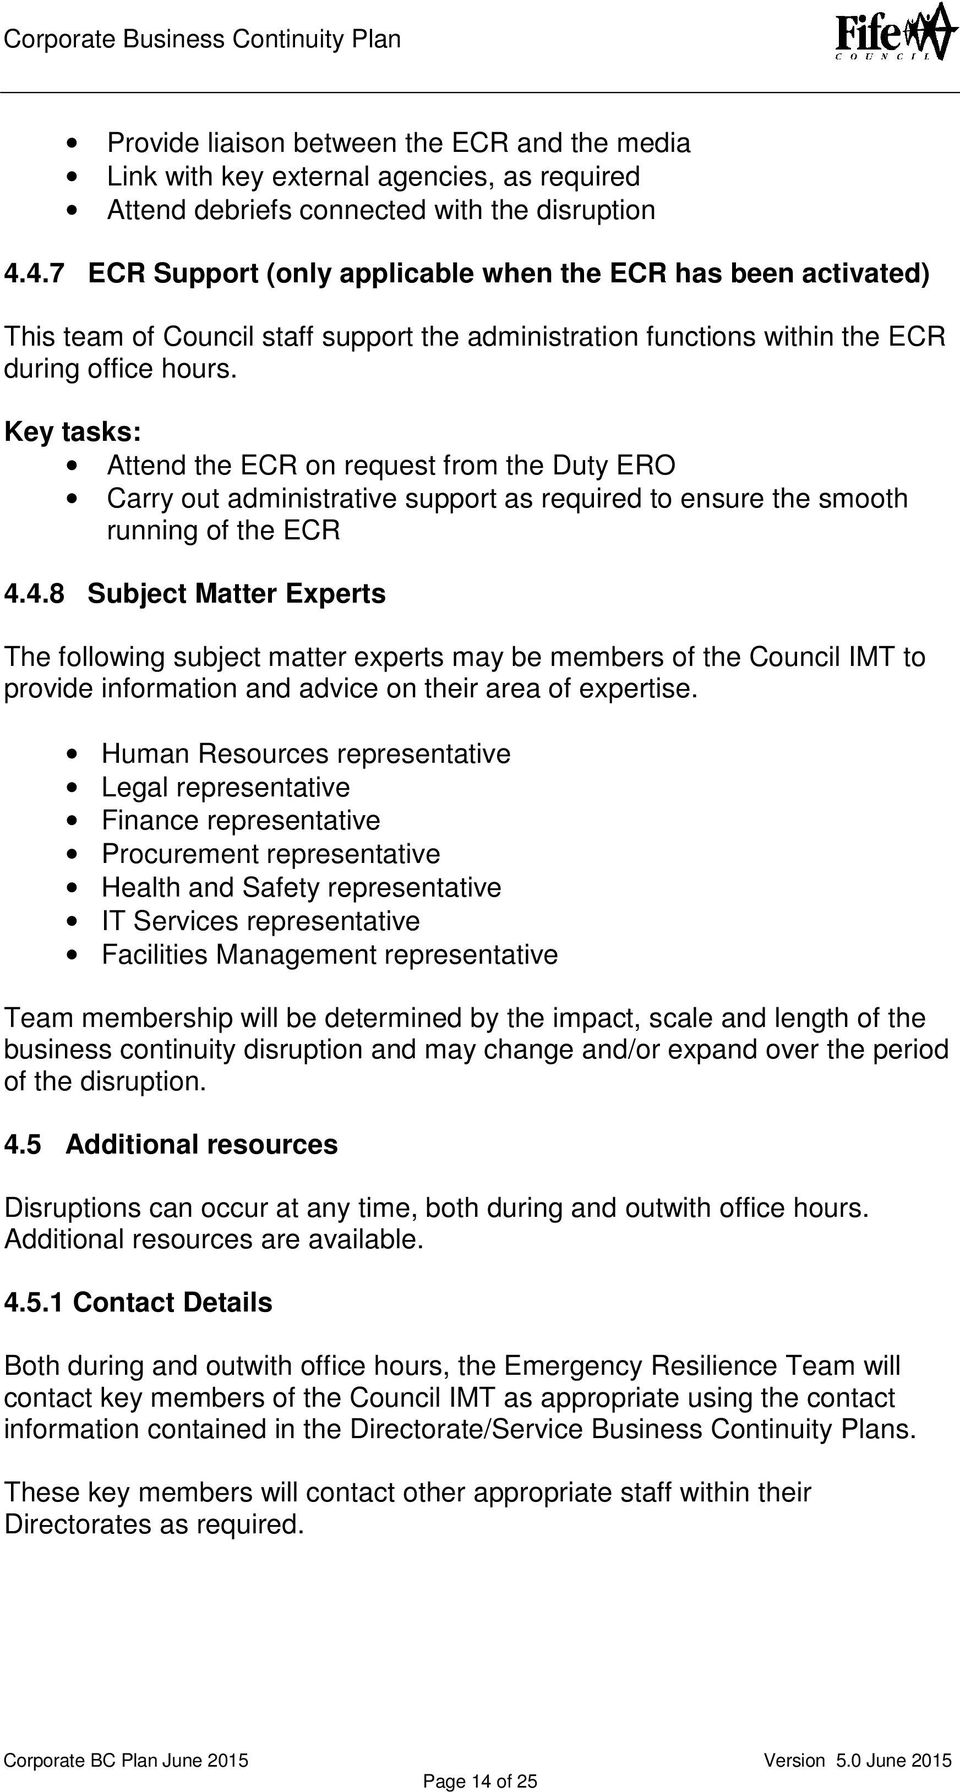 Key tasks: Attend the ECR on request from the Duty ERO Carry out administrative support as required to ensure the smooth running of the ECR 4.